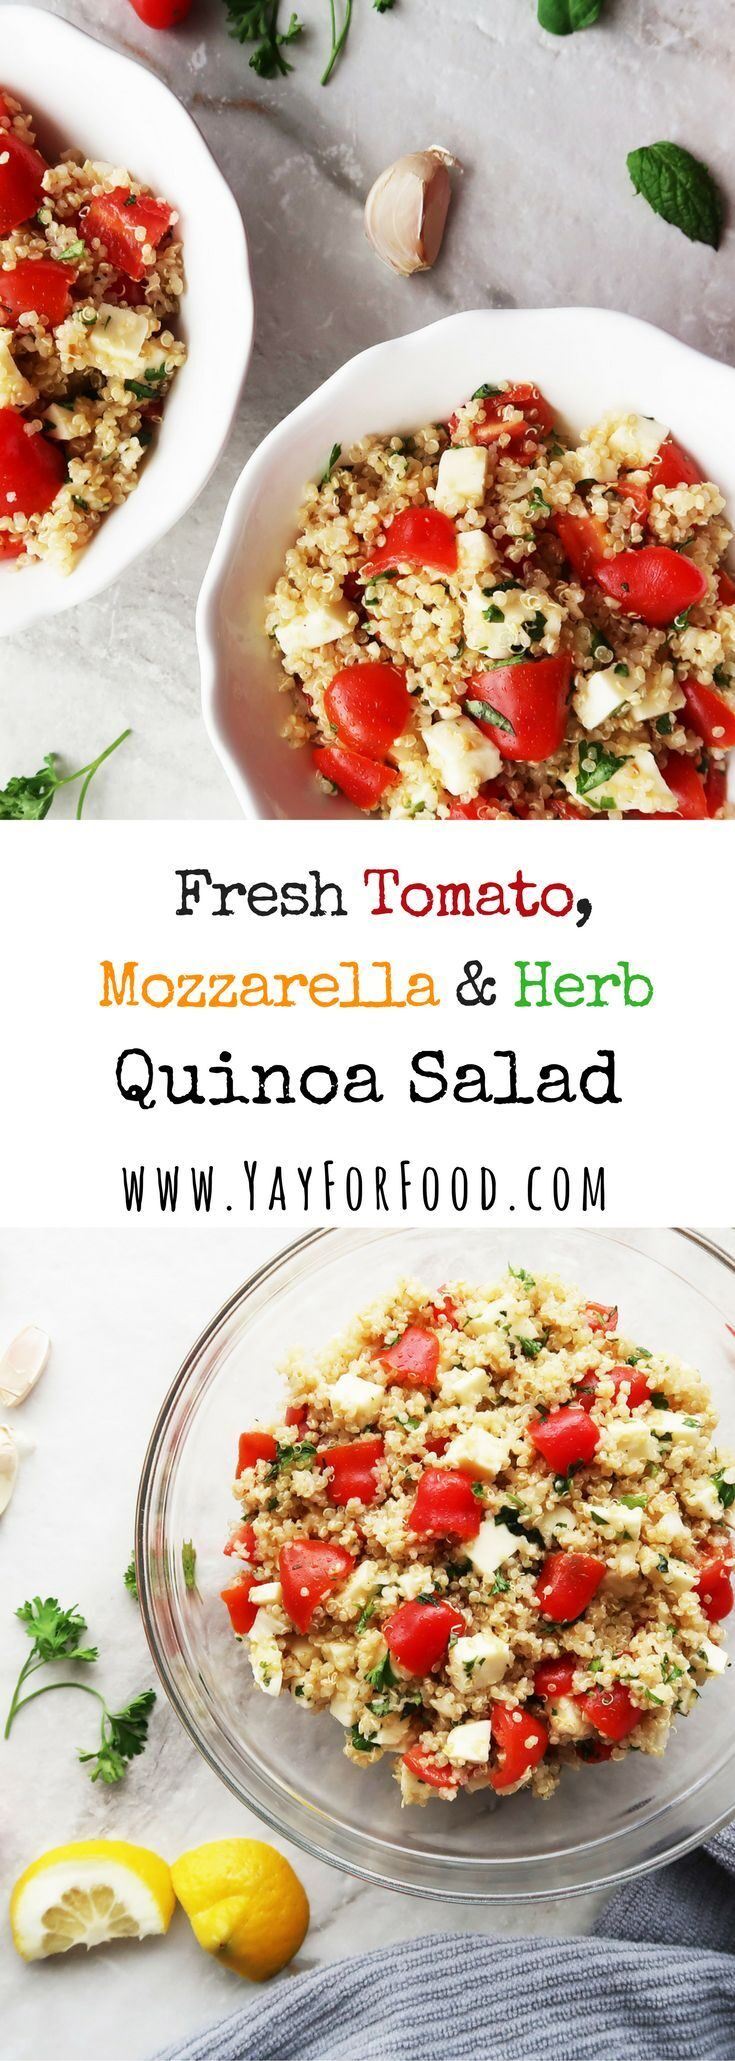 """<span style=""""font-size:14.6667px"""">A filling, delicious quinoa salad featuring fresh tomatoes, mozzarella, and herbs. Gluten-free, vegetarian, and nutrient-rich.</span>"""